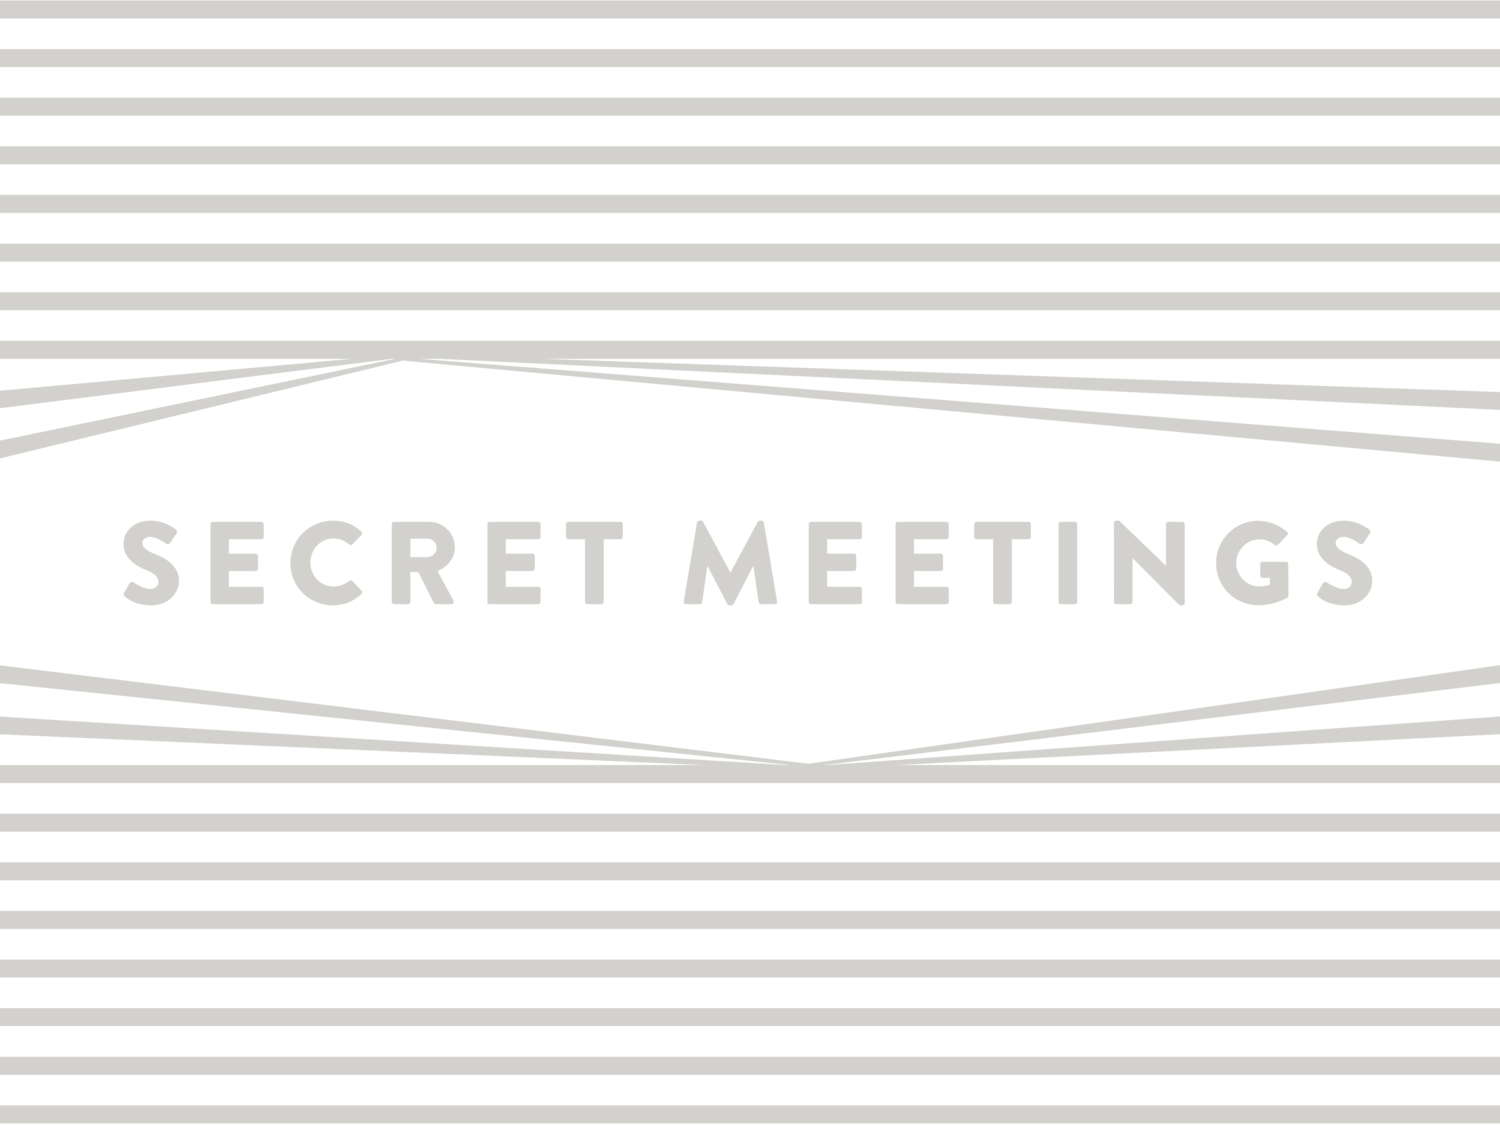 Secret Meetings